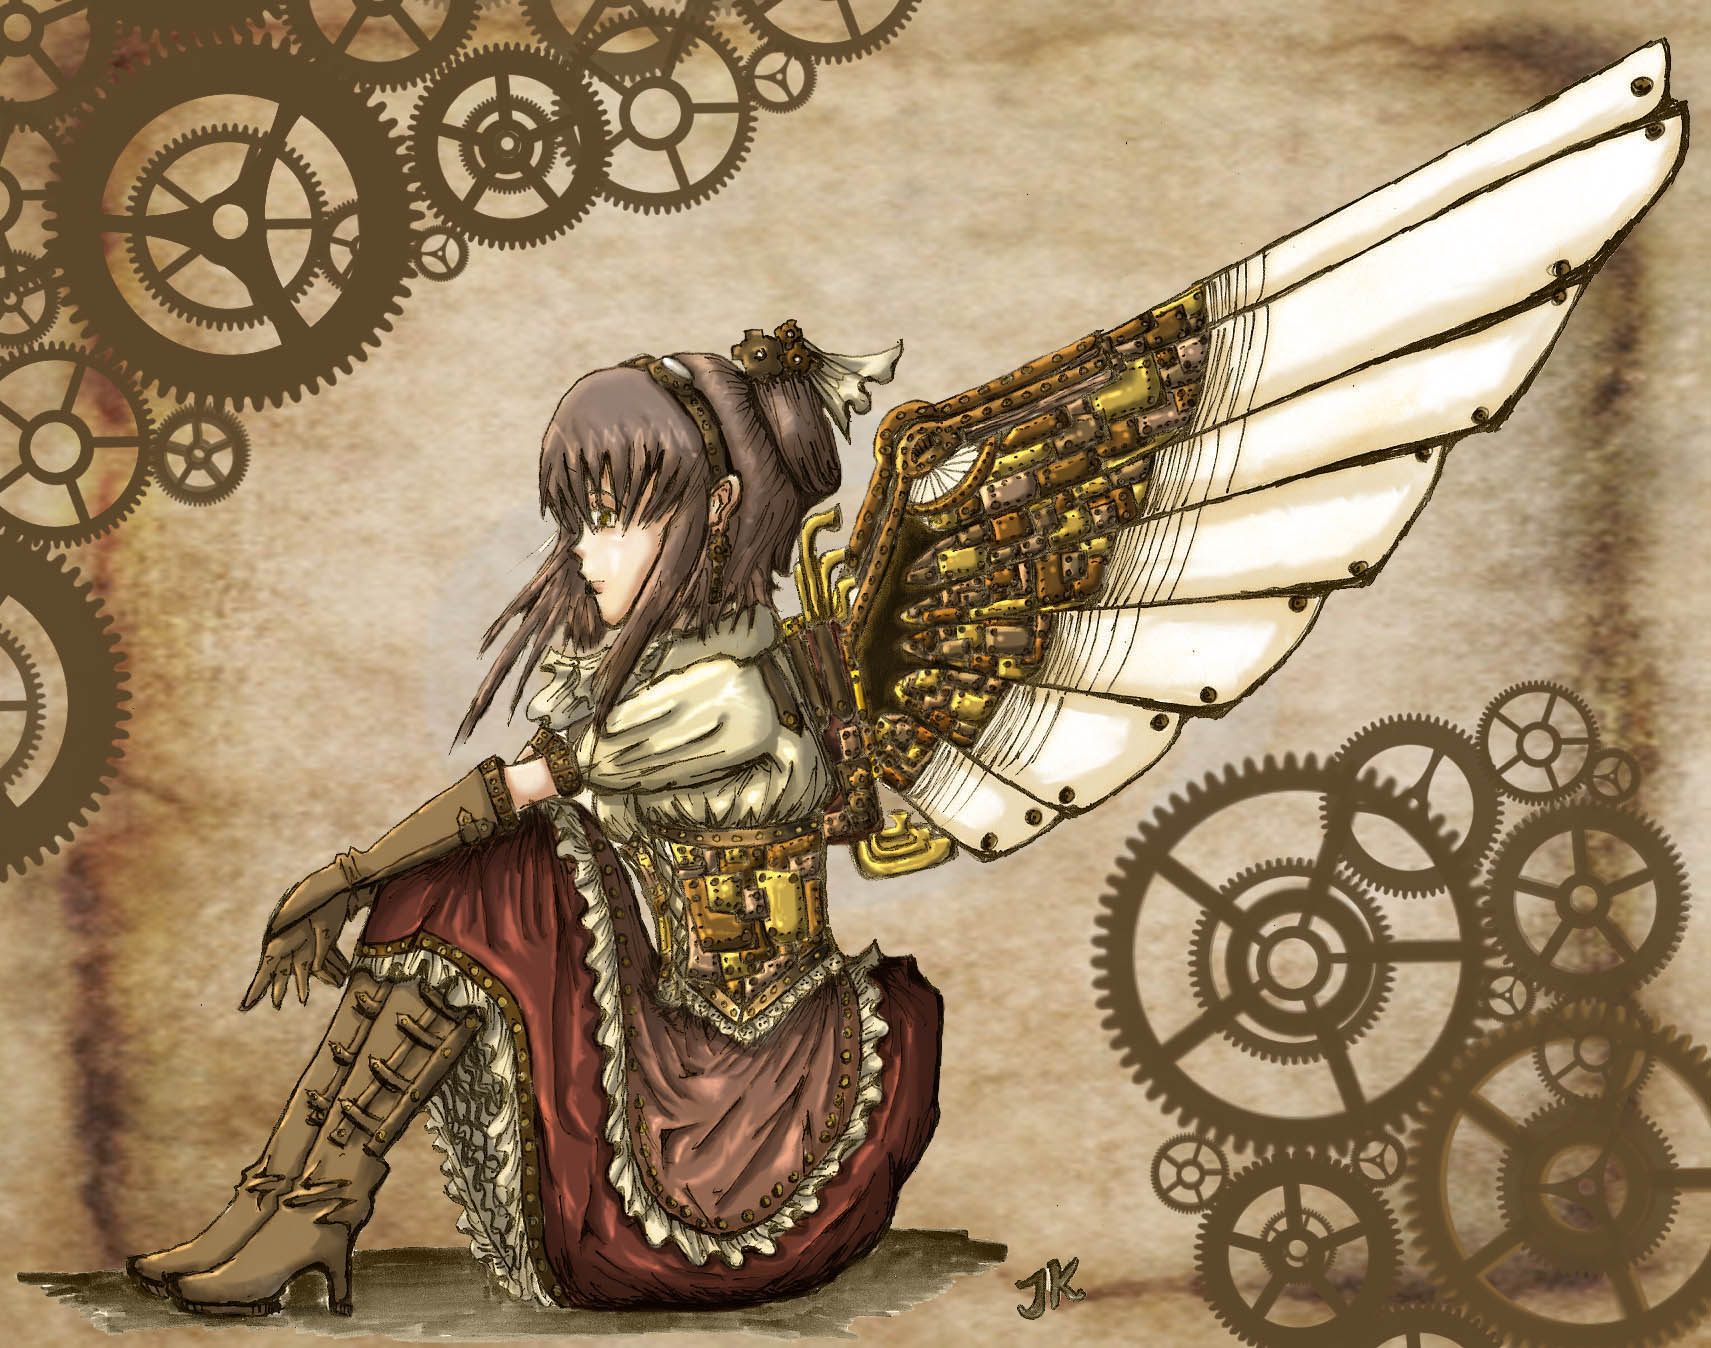 steam punk anime steampunk - photo #37